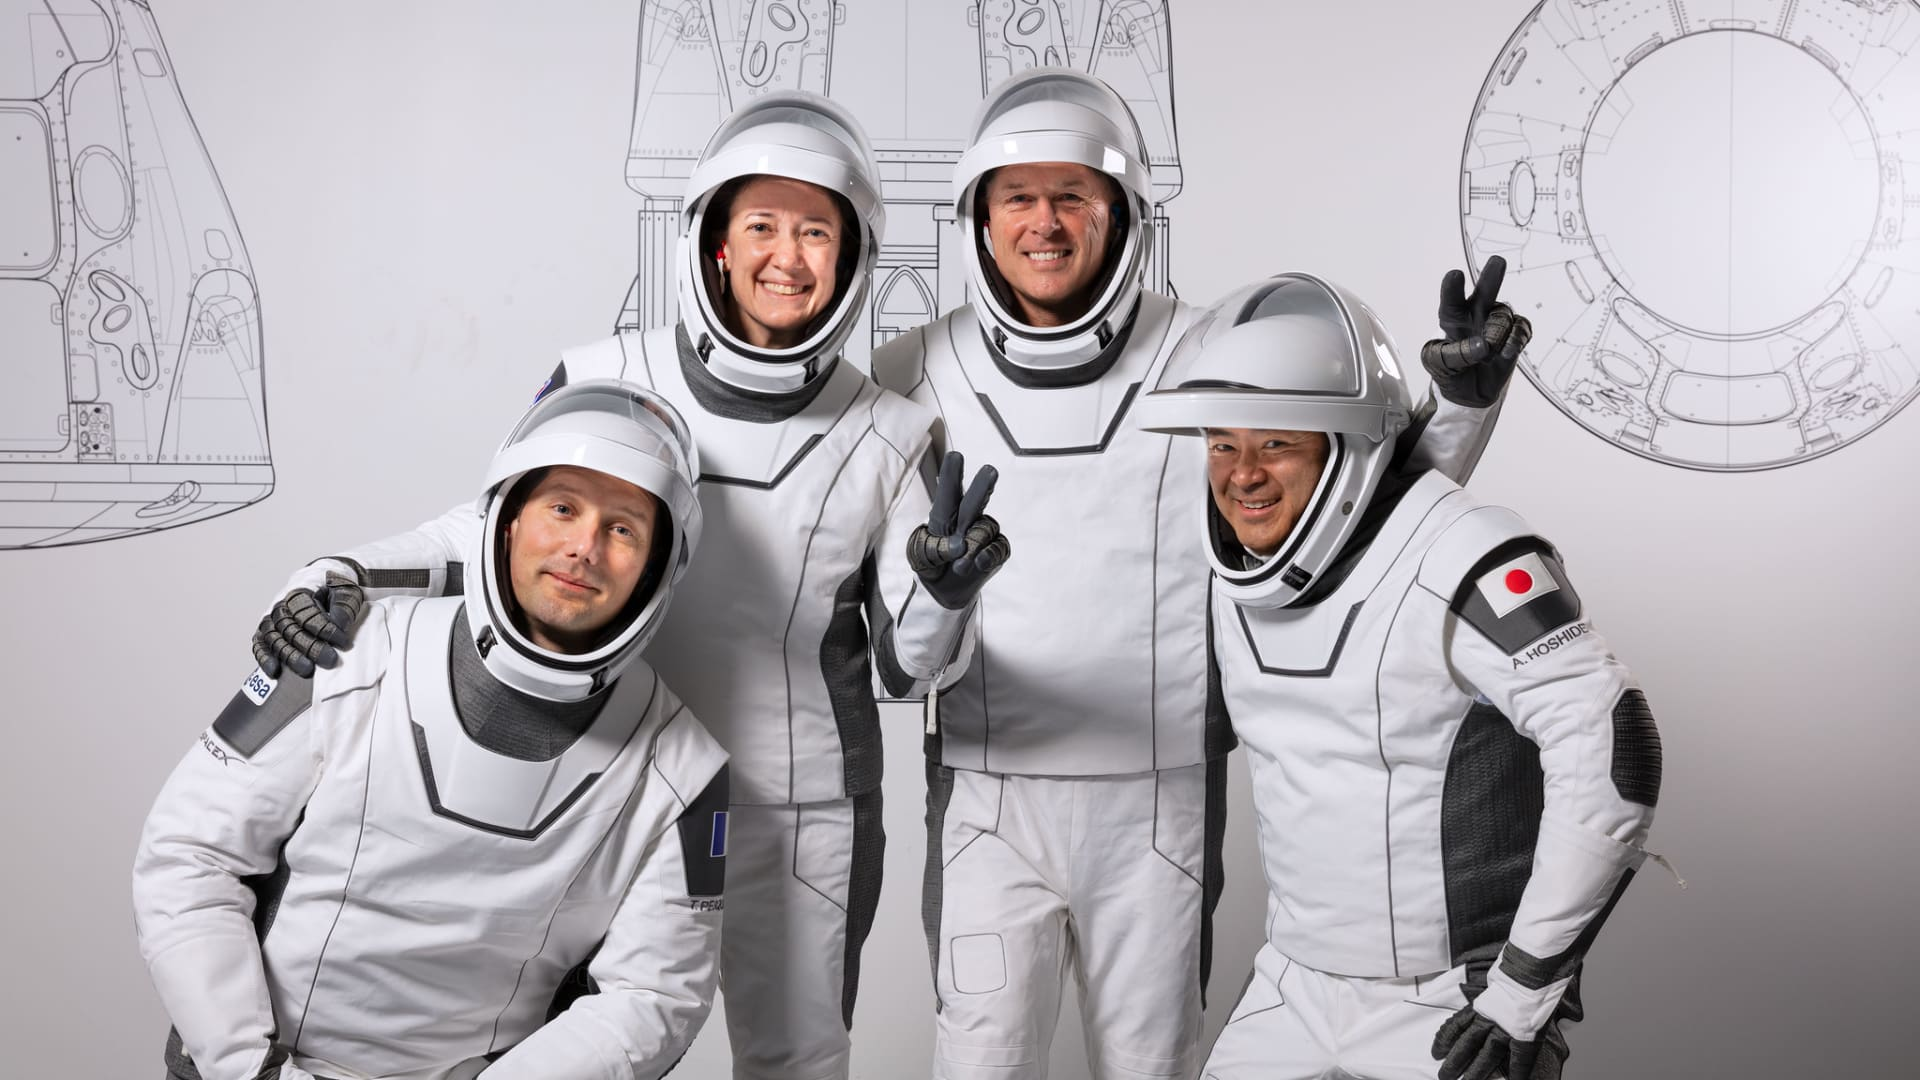 From left: Mission specialist Thomas Pesquet of the ESA, pilot Megan McArthur of NASA, commander Shane Kimbrough of NASA, and mission specialist Akihiko Hoshide of JAXA.